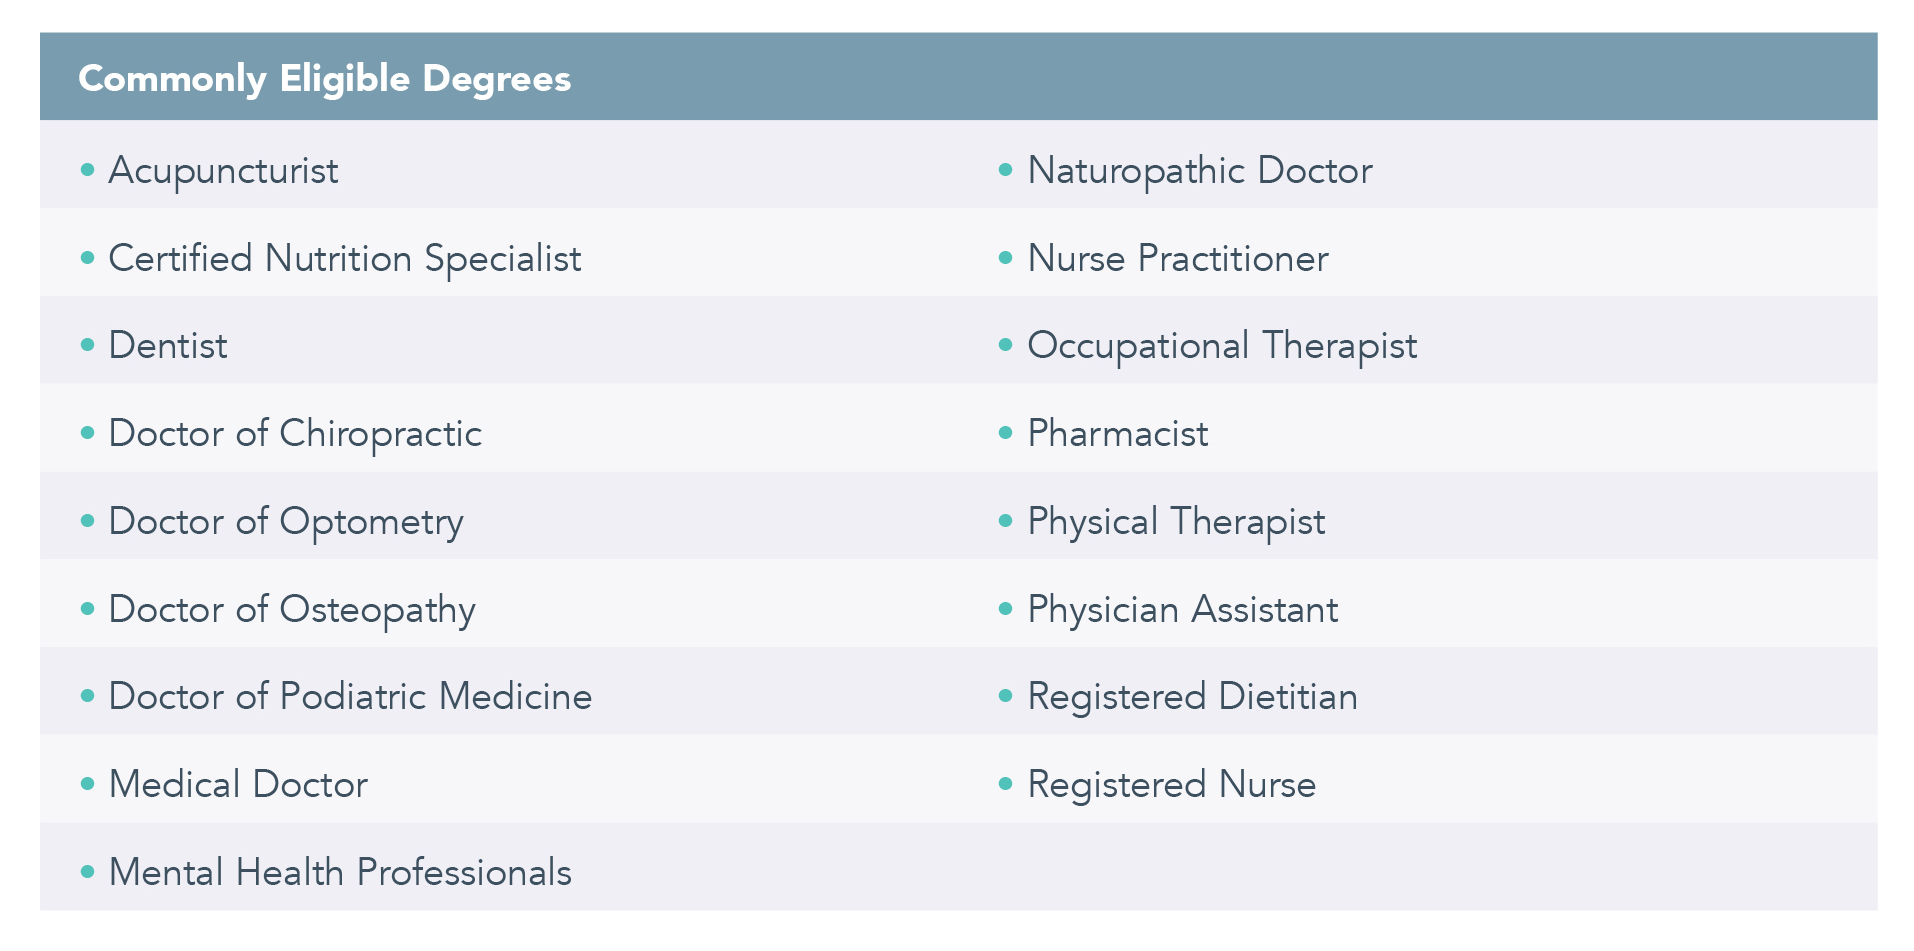 Commonly Eligibile Degrees for IFM Certification Program and Student Discounts